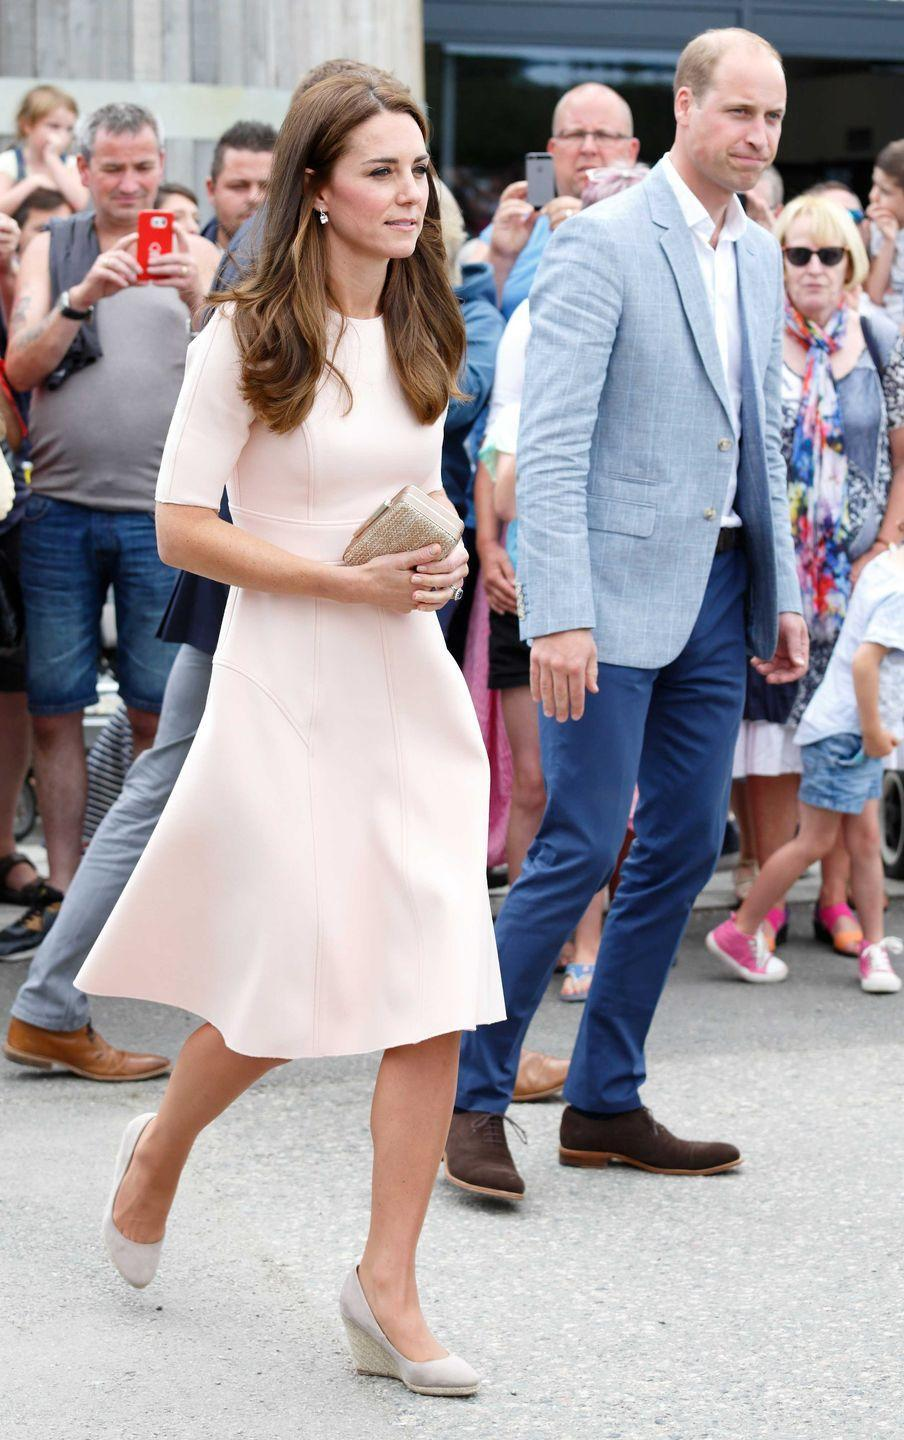 <p>Kate and William visit Healey's Cornish Cider Farm in Truro, England. The Duchess wore a dress by American designer Lela Rose.</p>